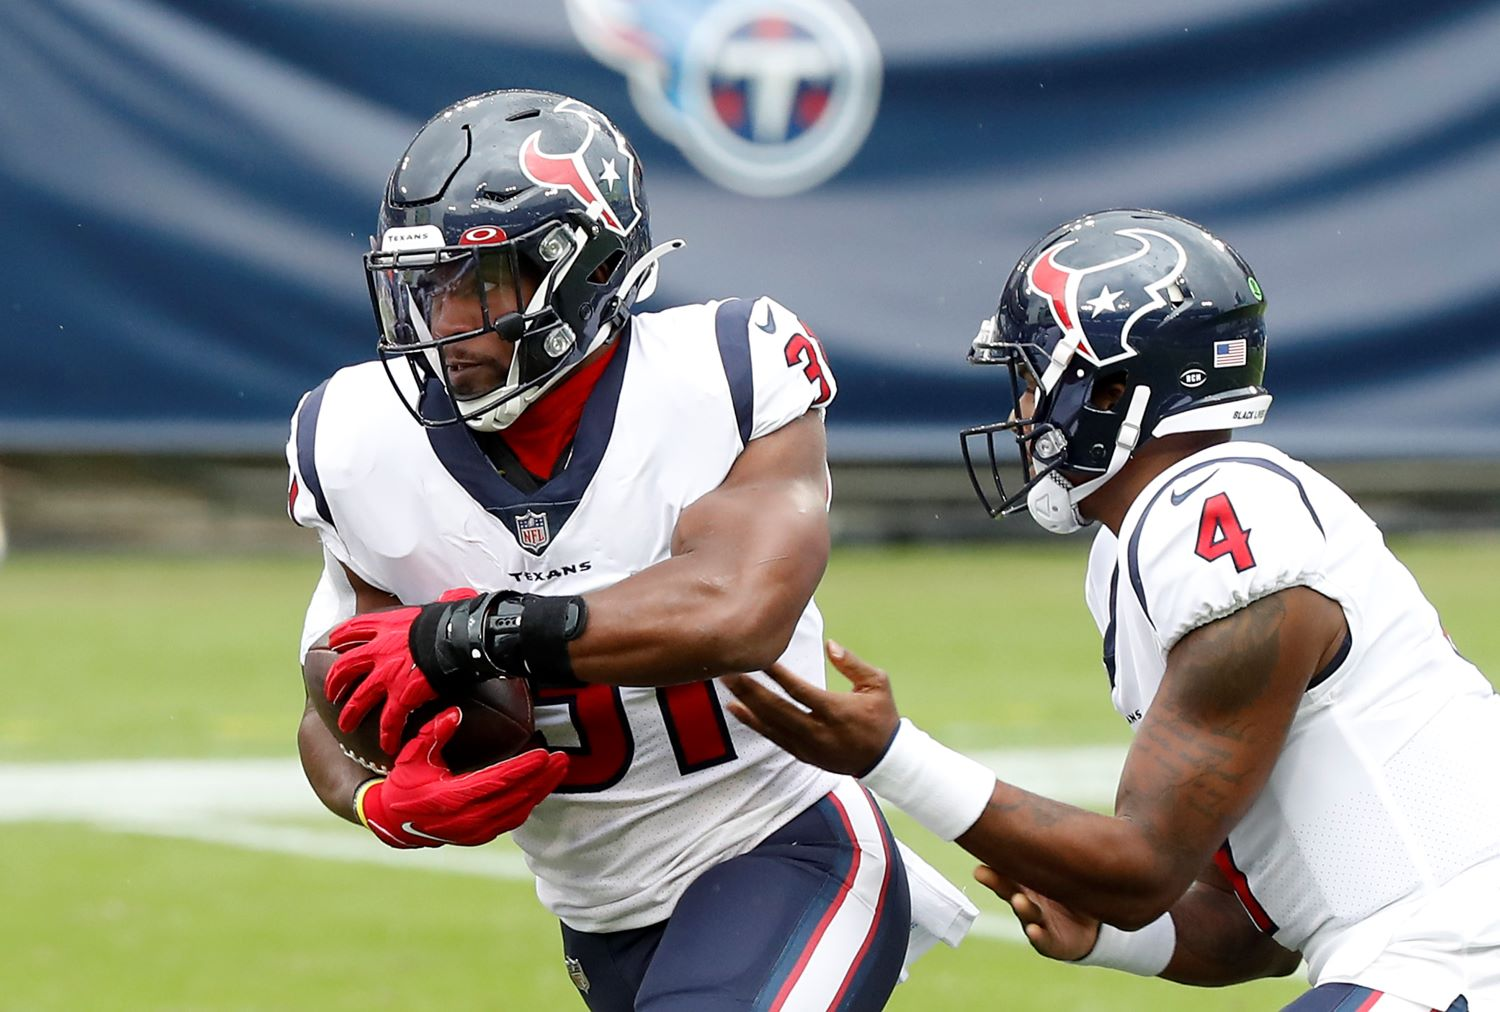 With running back David Johnson landing on injured reserve, the Houston Texans will rely on Duke Johnson to carry the load moving forward.